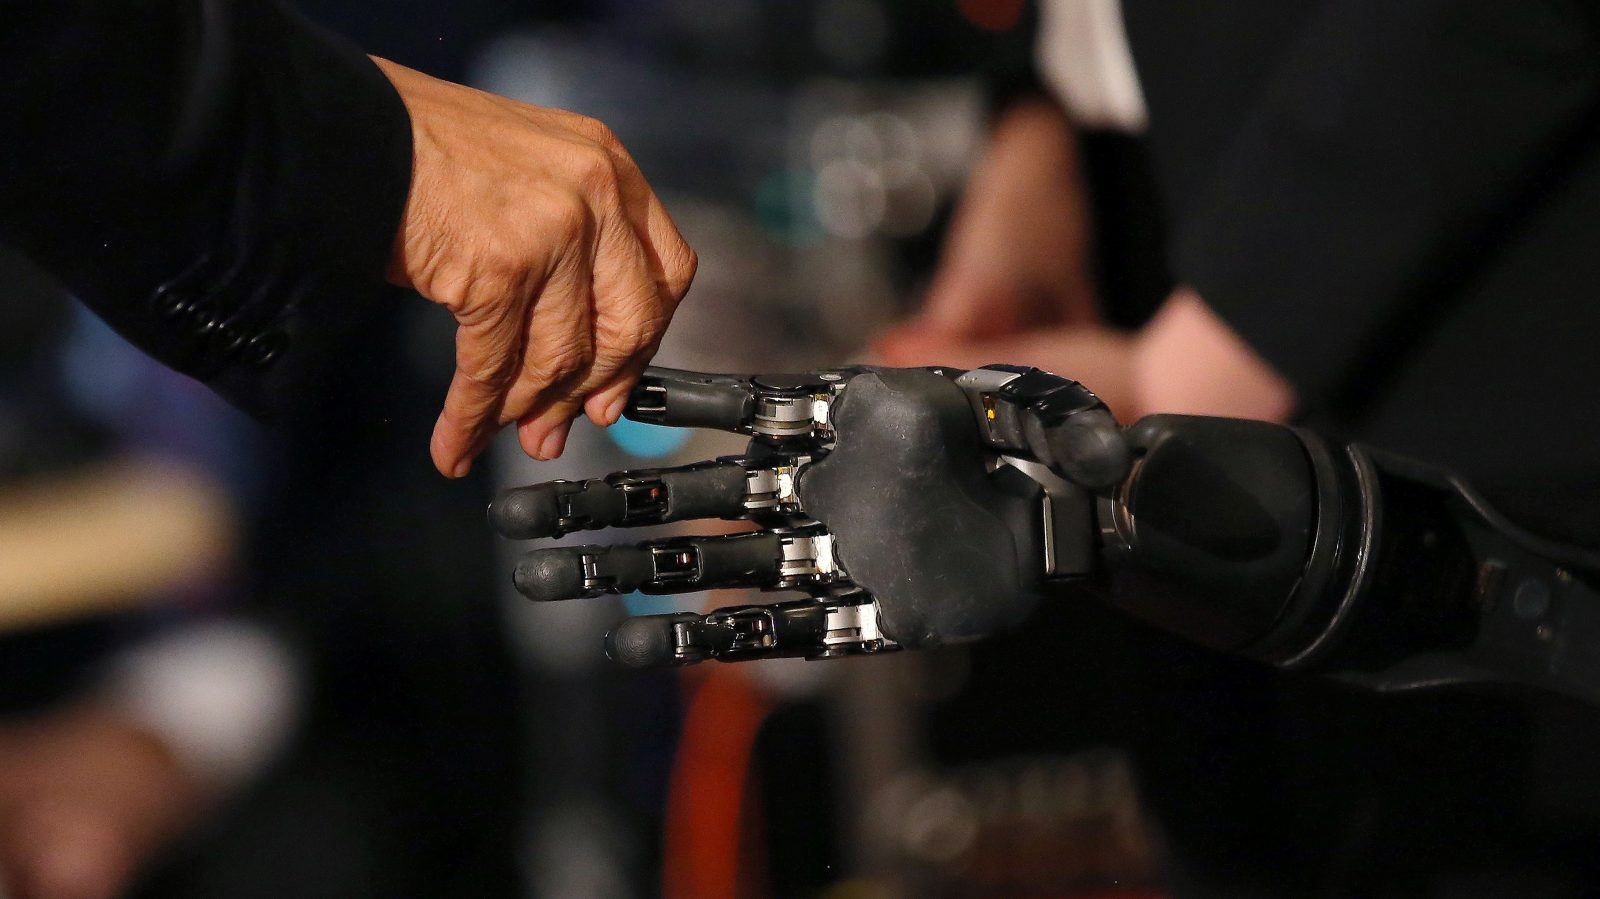 U.S. President Barack Obama touches a robotic arm operated by Nathan Copeland, a quadriplegic brain implant patient who can experience the sensation of touch and control a remote robotic arm with his brain during a tour of the innovation projects at the White House Frontiers conference in Pittsburgh, U.S. October 13, 2016.  REUTERS/Carlos Barria - RTSS5SI